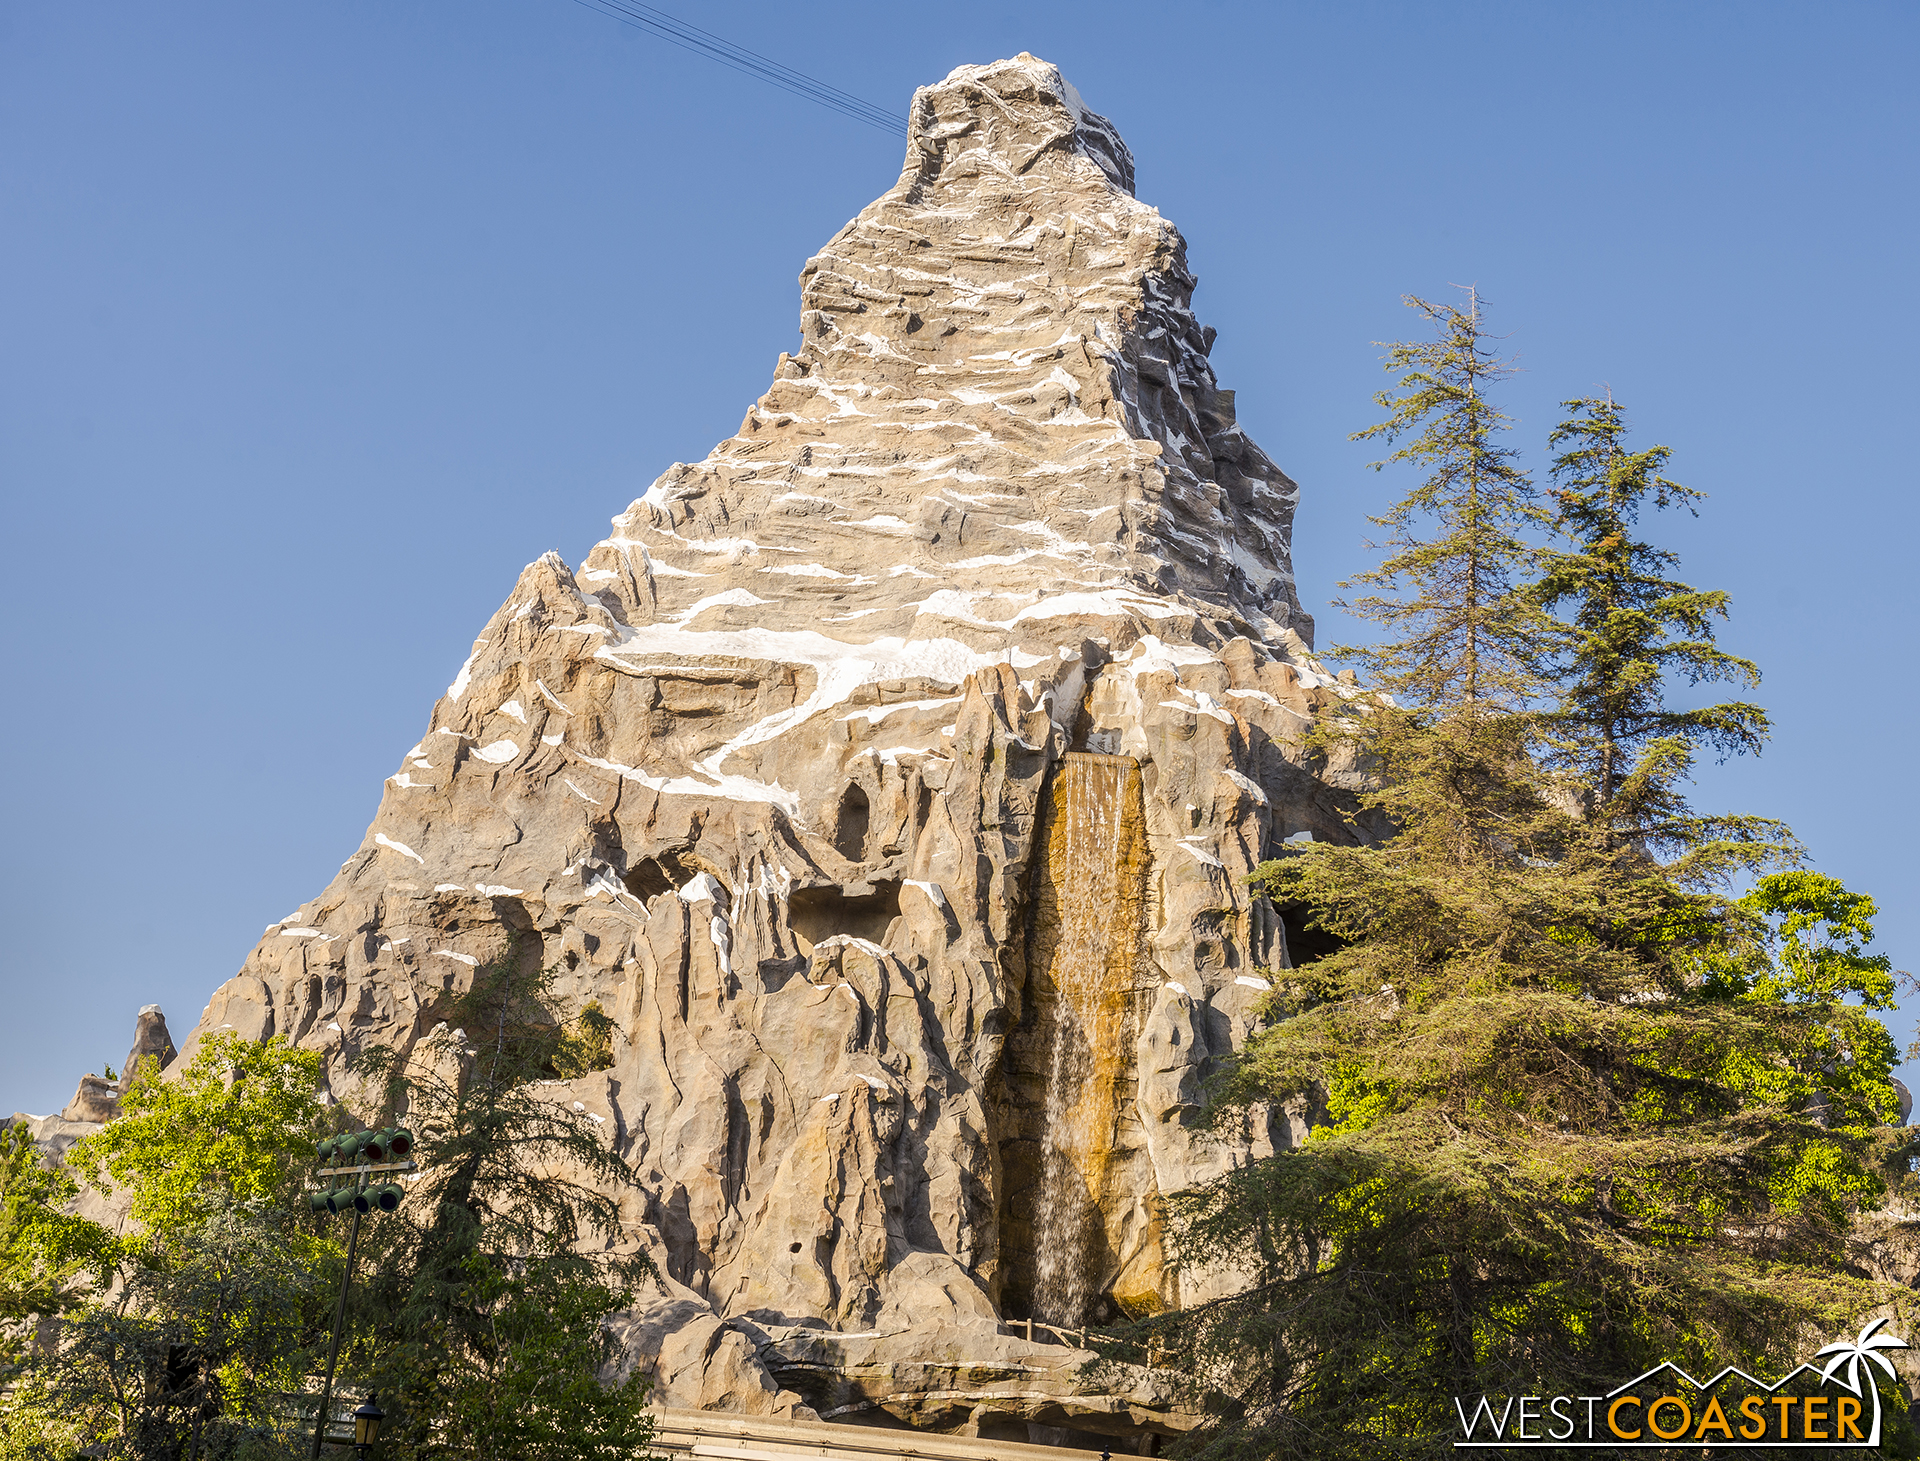 The waterfall is on, which means Disneyland's first roller coaster is back open!